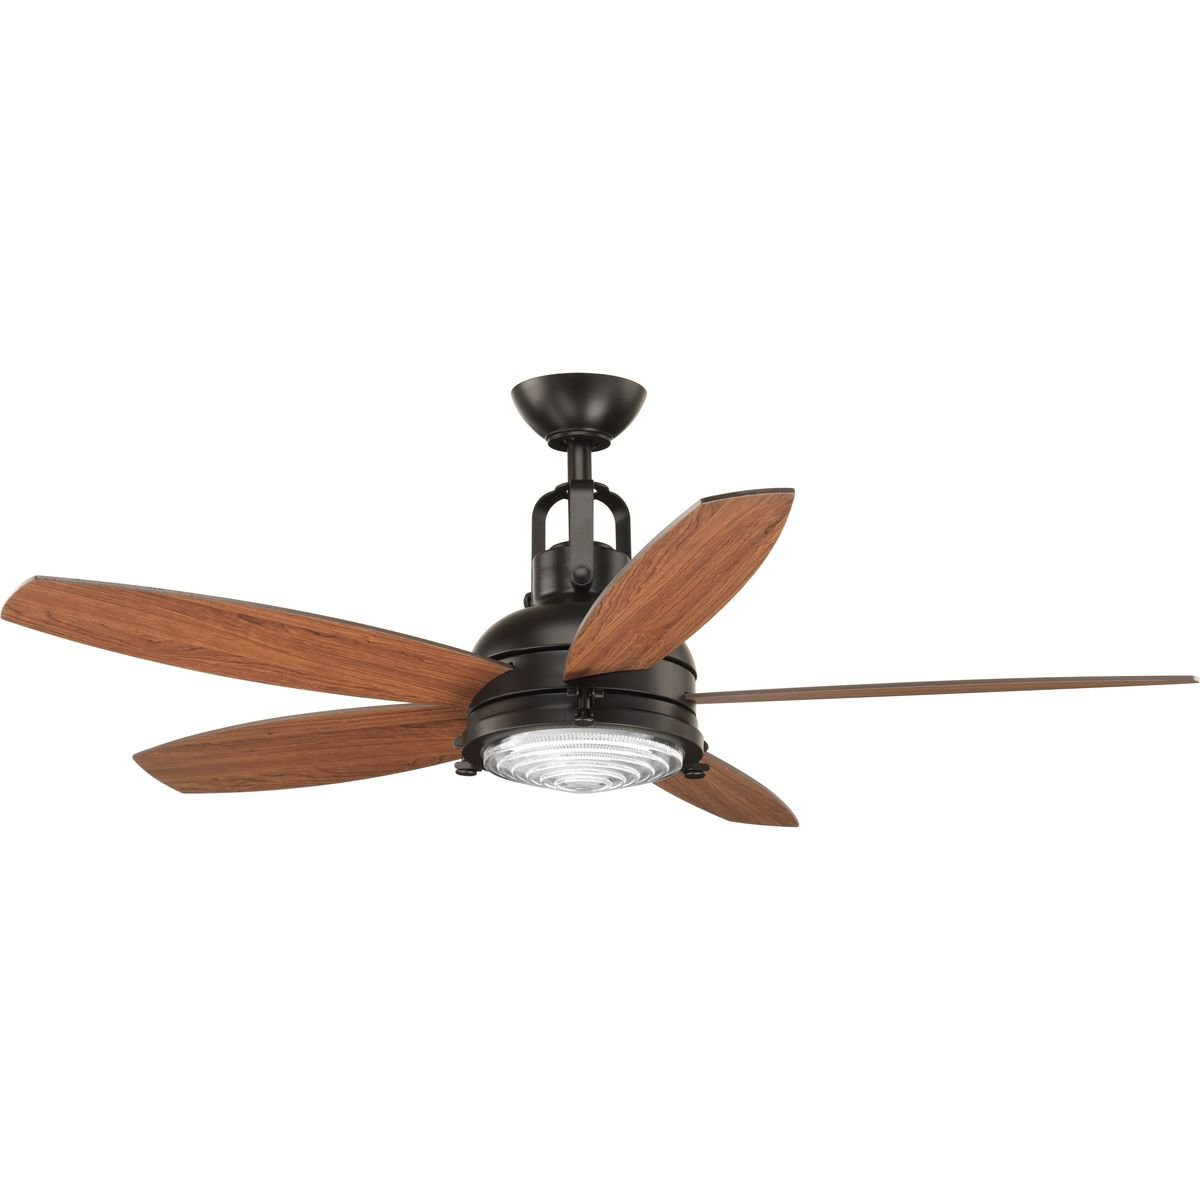 Gehlert 5 Blade Led Ceiling Fan With Remote Regarding Current Marcoux 5 Blade Ceiling Fans (View 8 of 20)